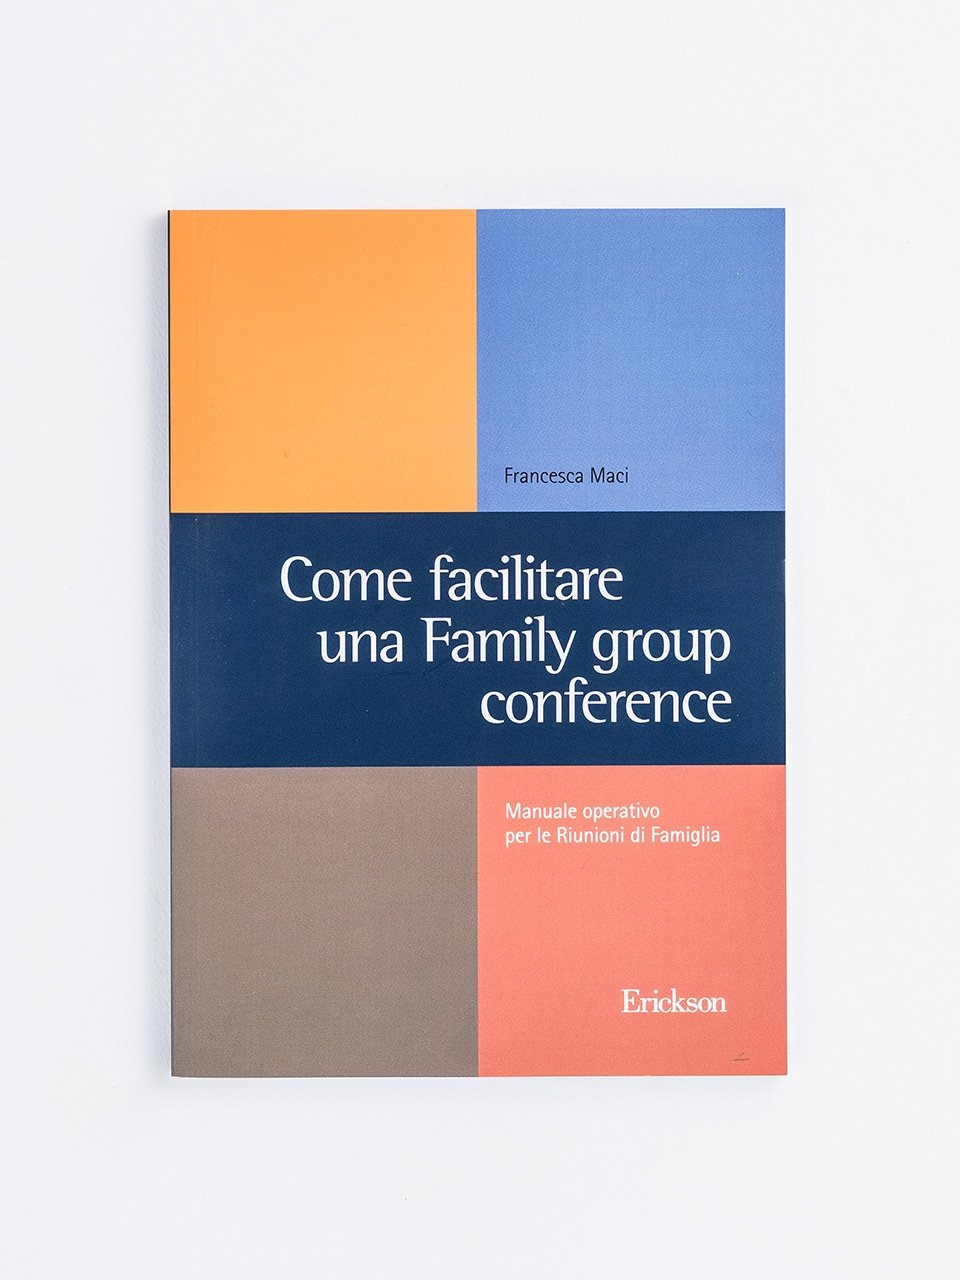 Come facilitare una Family group conference - I mini gialli dei dettati 1 - Libri - Erickson